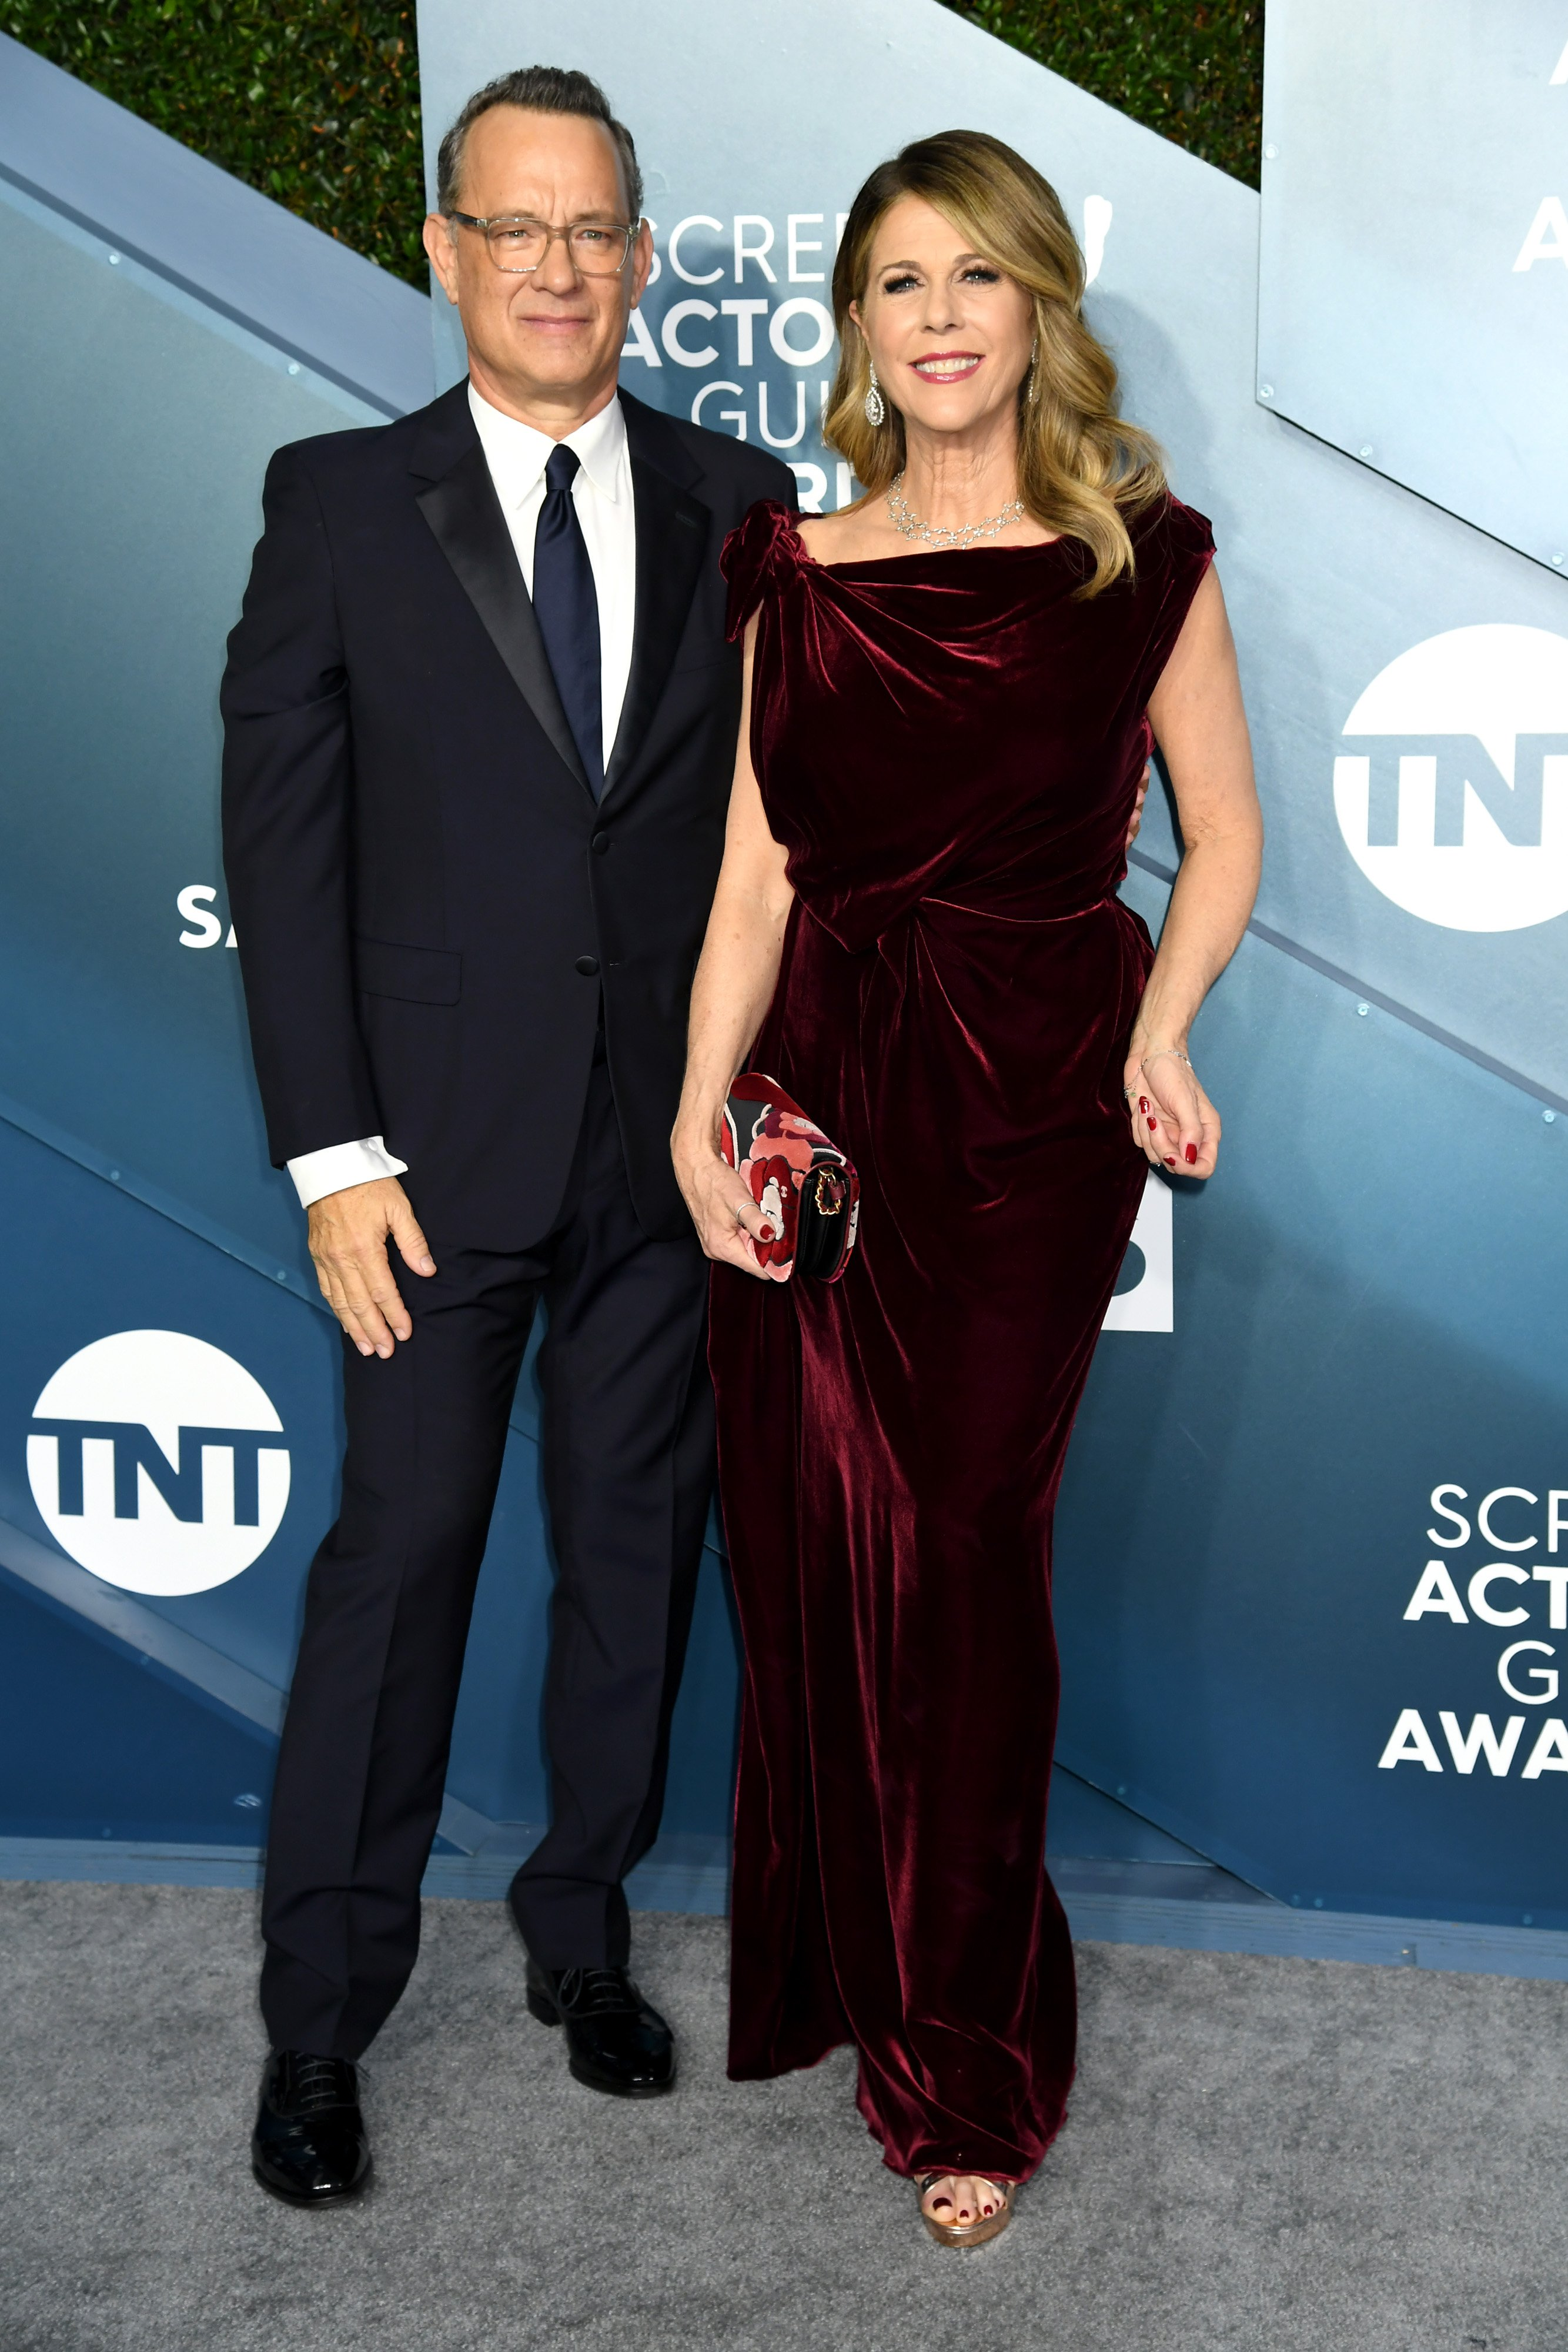 Tom Hanks and Rita Wilson attends the 26th Annual Screen ActorsGuild Awards on January 19, 2020, in Los Angeles, California.   Source: Getty Images.